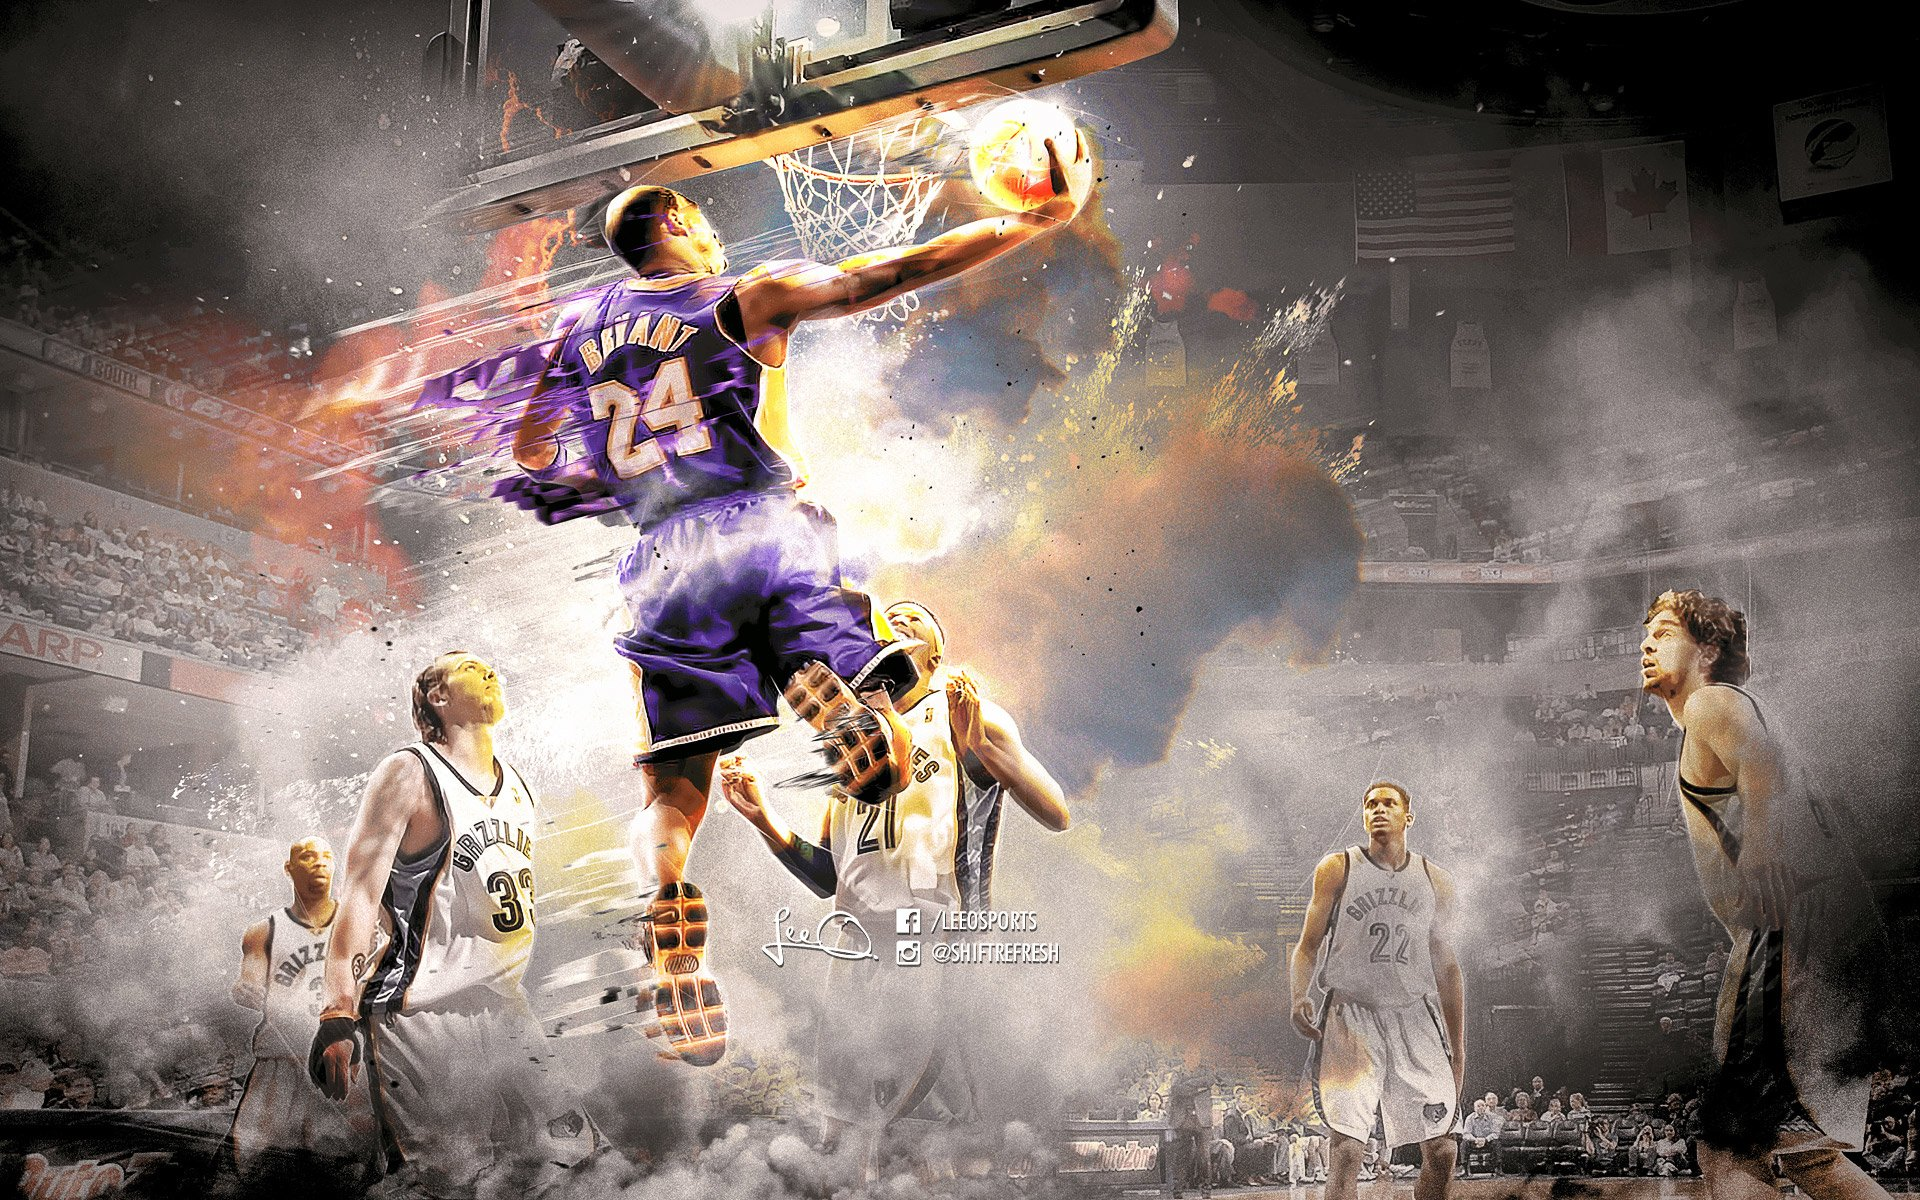 Good Wallpaper Logo Kobe Bryant - thumb-1920-776029  Graphic_2840.jpg